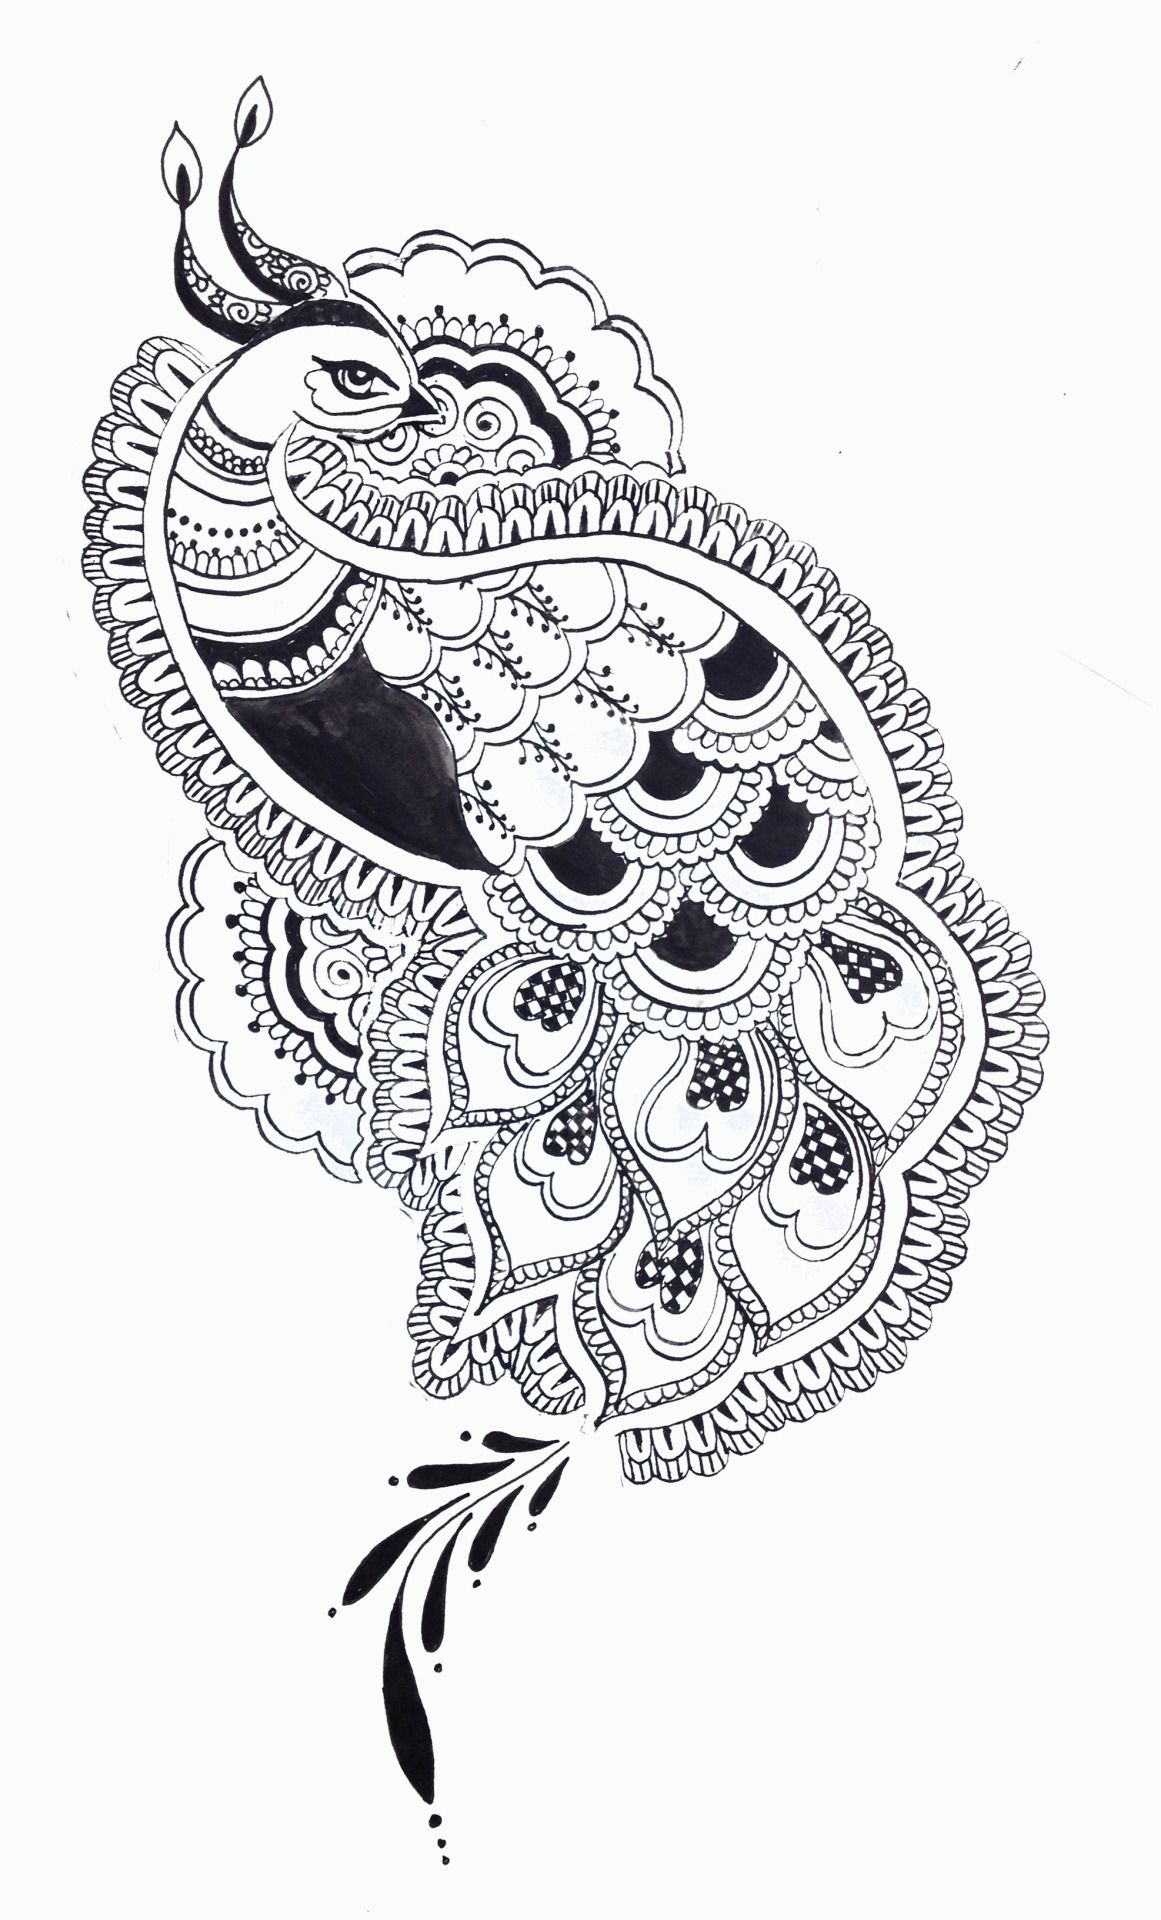 banner free Drawing peacocks black and white. Peacock design google search